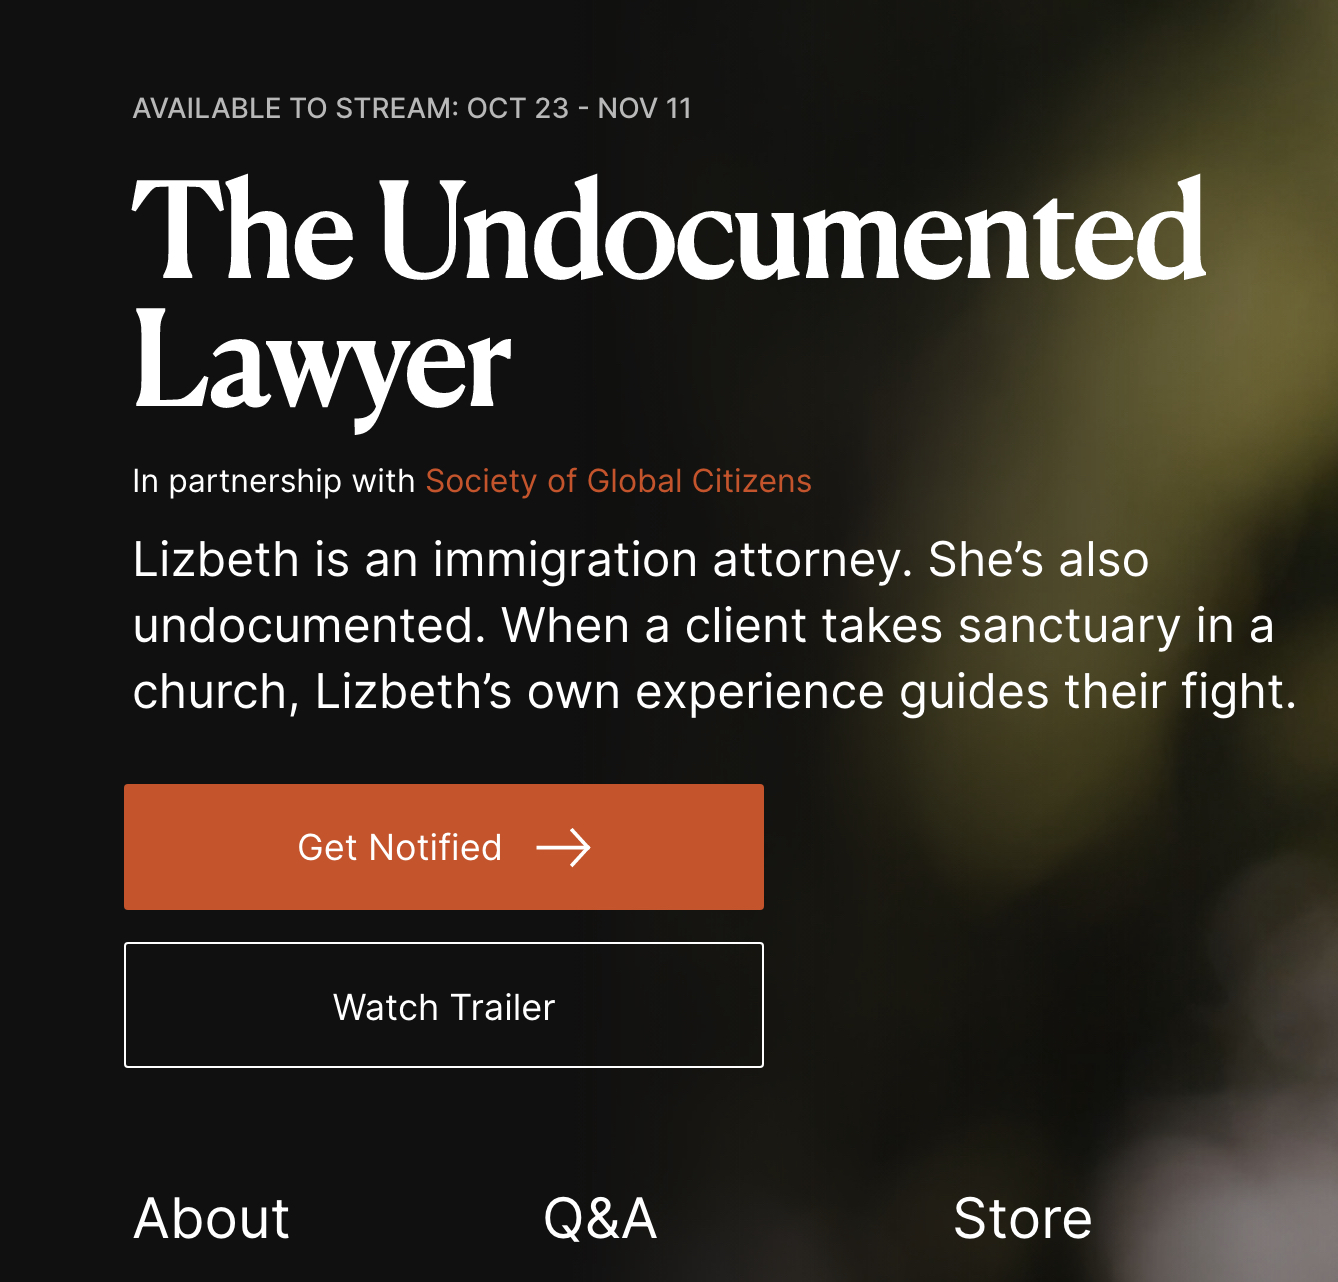 The_Undocumented_Lawyer_2020-10-16_21-21-21.jpg